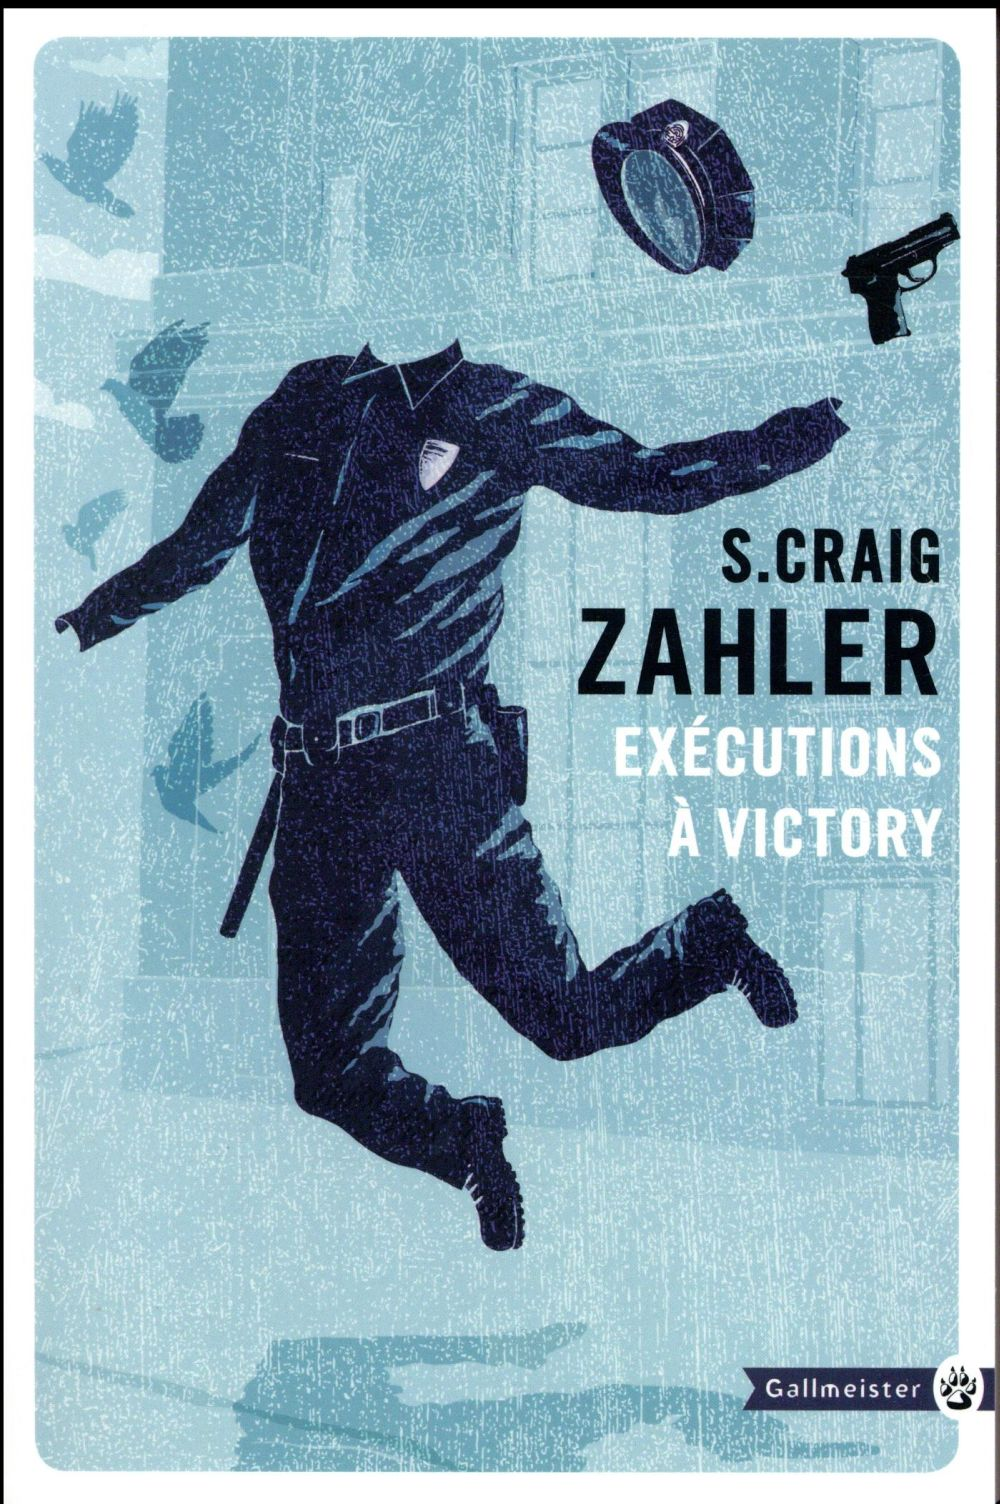 EXECUTIONS A VICTORY ZAHLER S. CRAIG Gallmeister